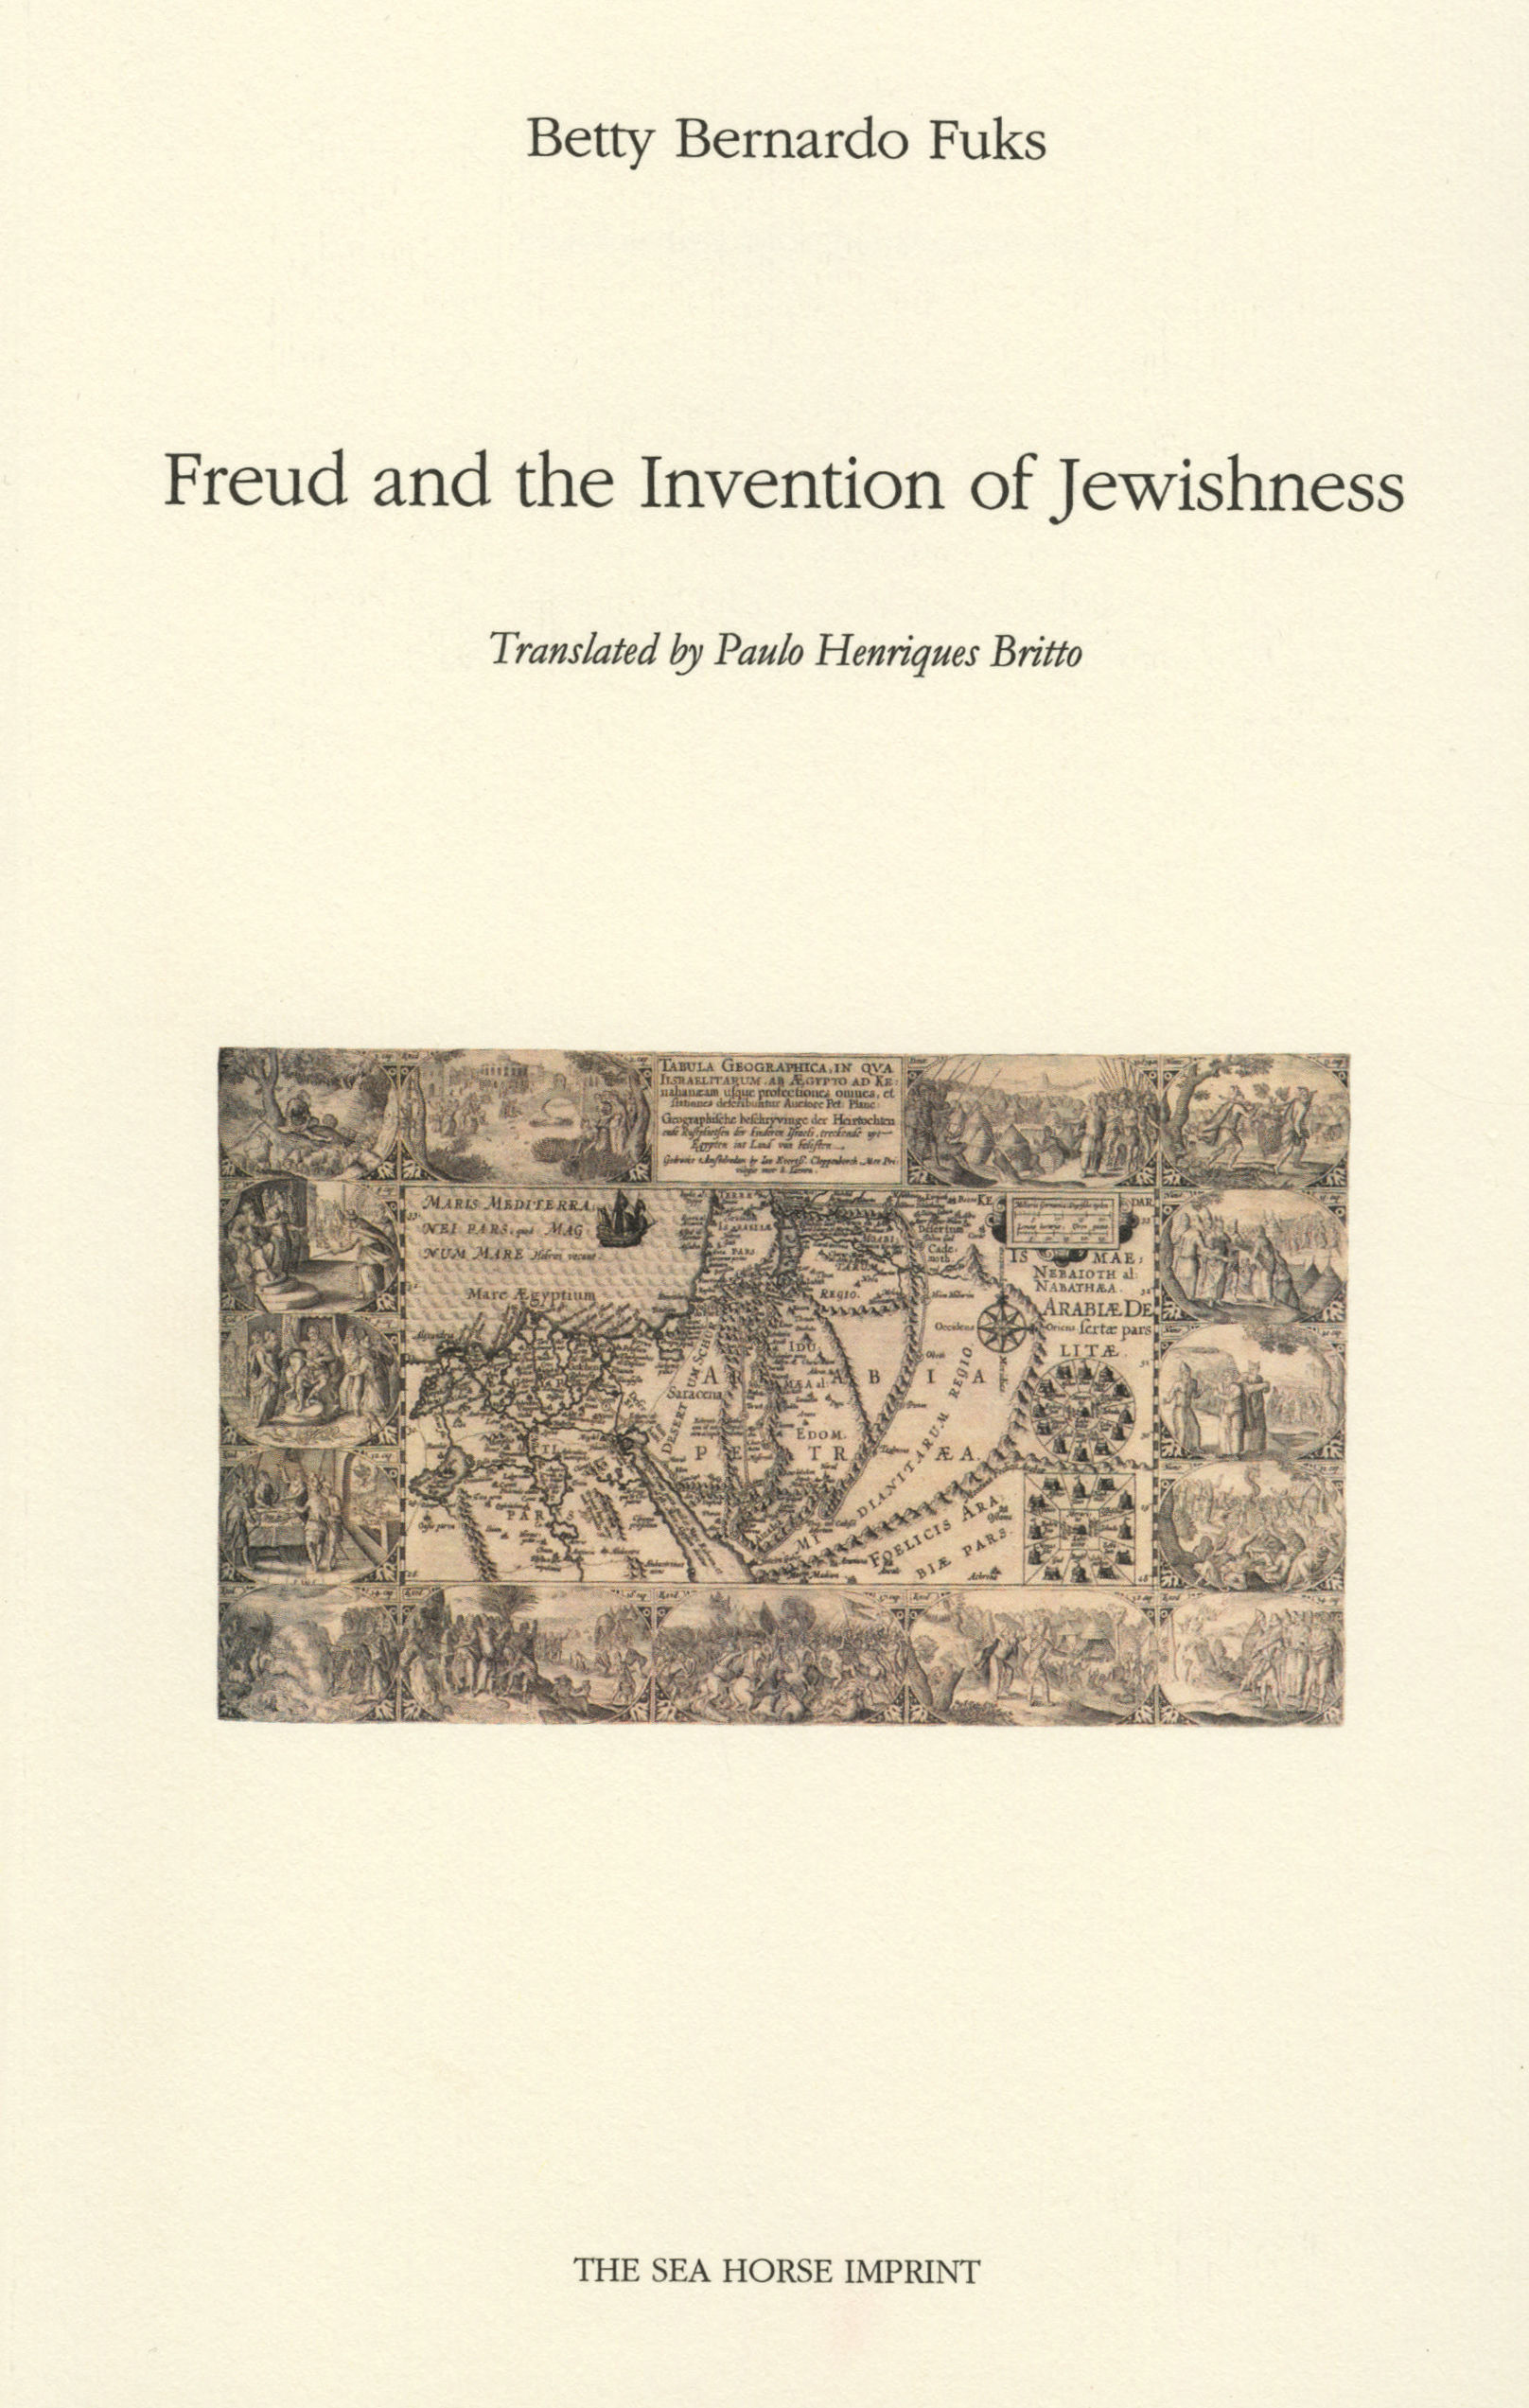 Freud and Jewishness Cover.jpg